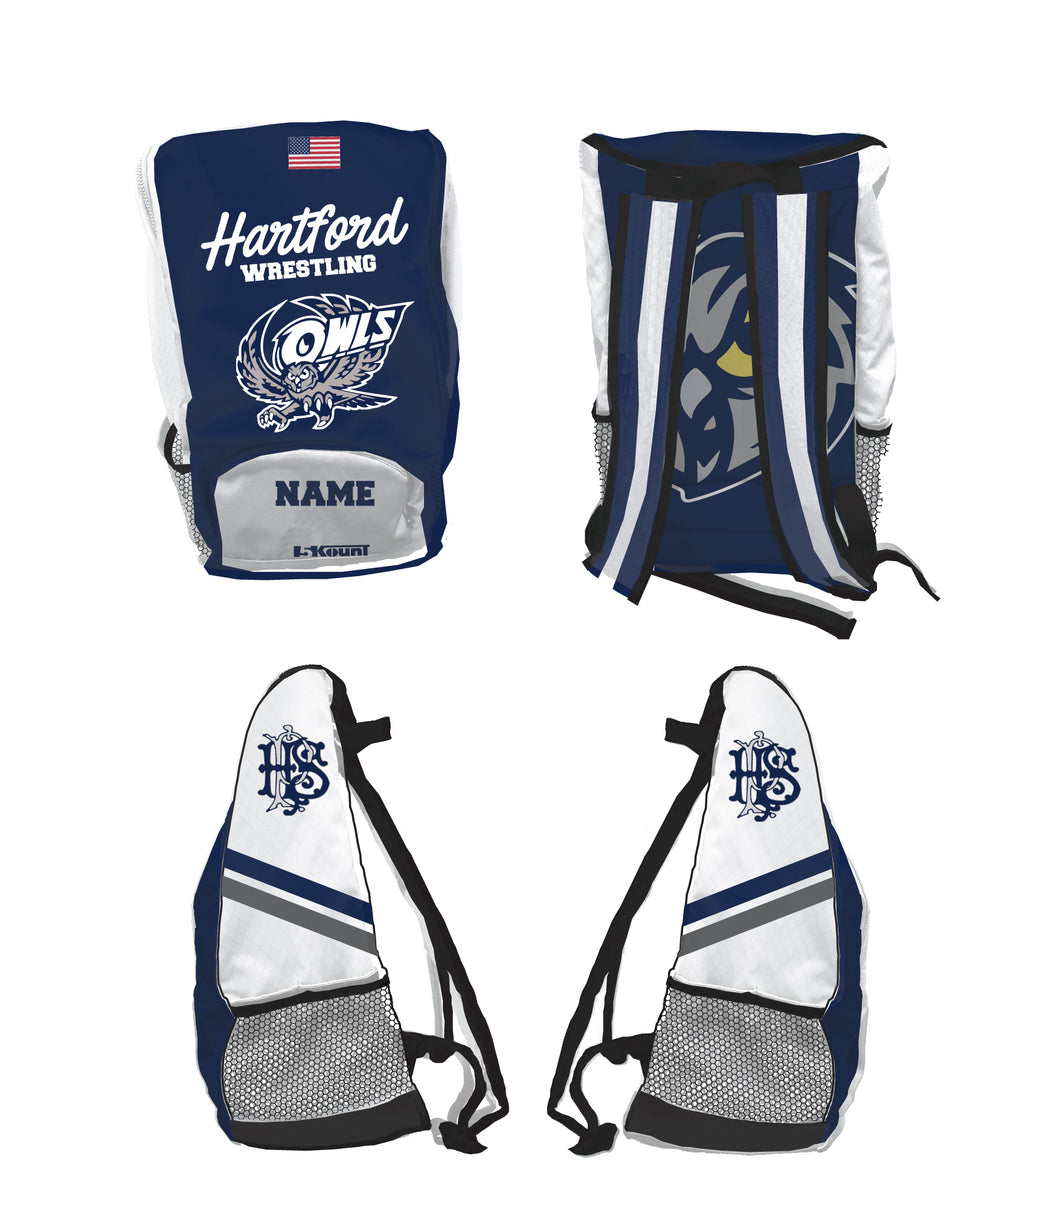 Hartford Owls Wrestling Sublimated Backpack - 5KounT2018